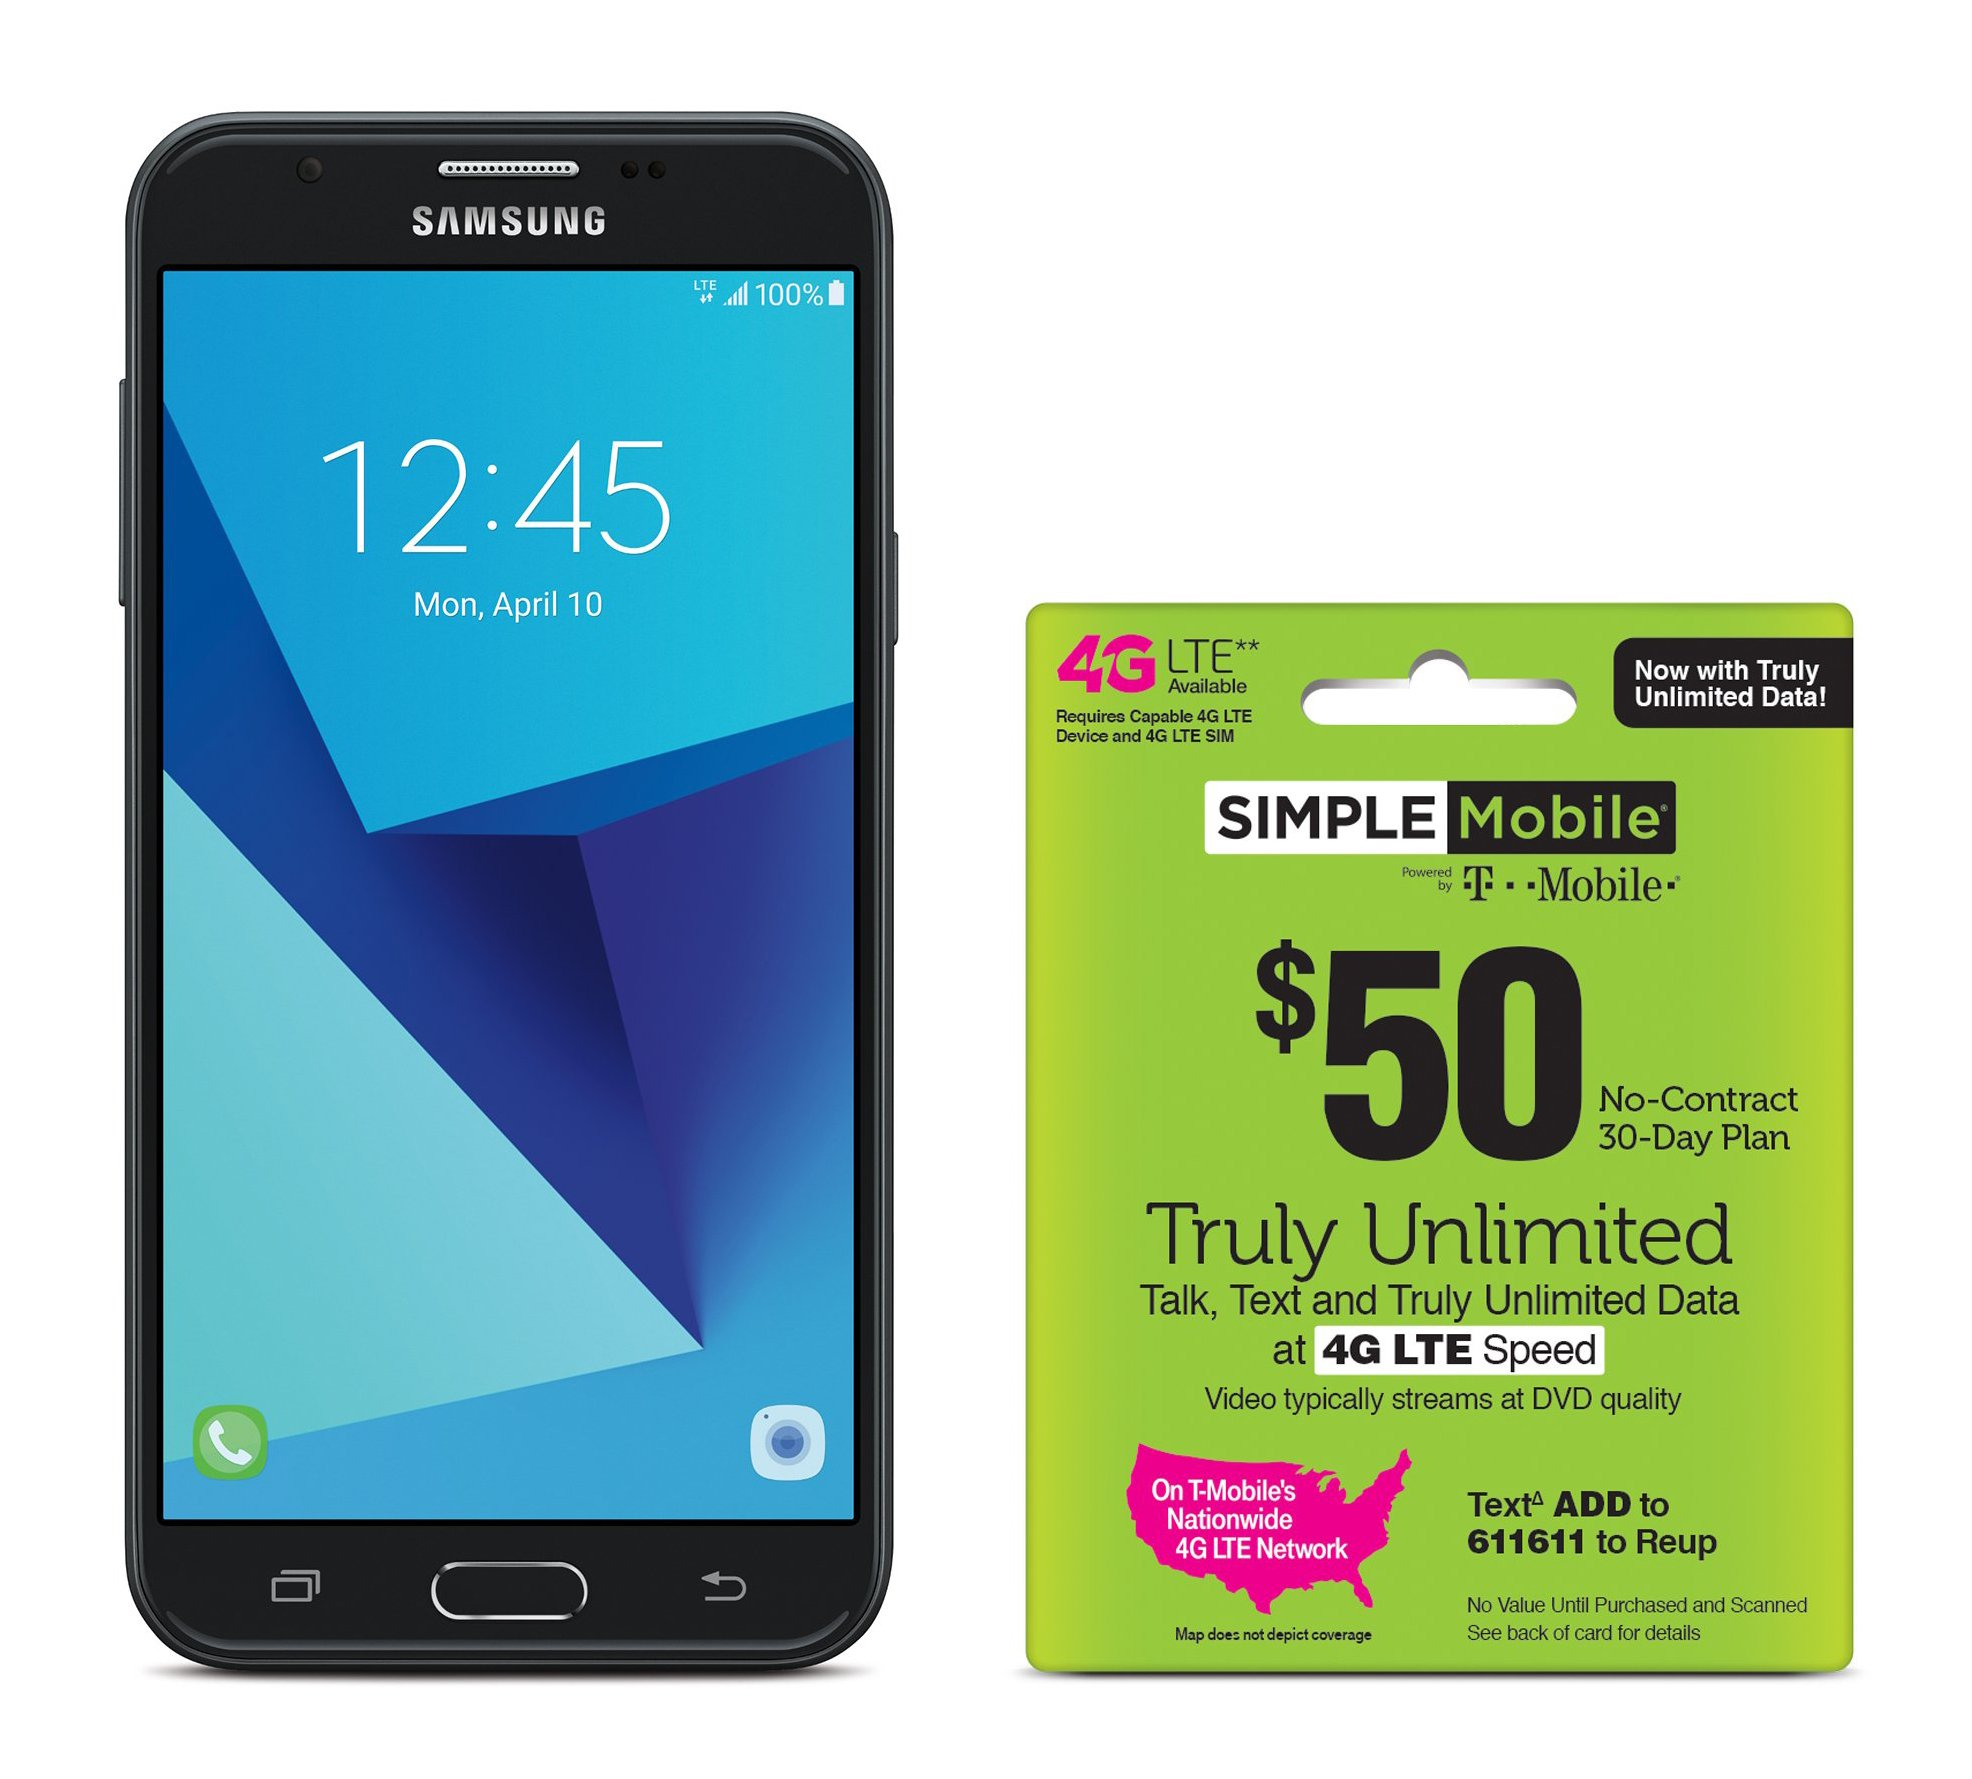 Simple Mobile Samsung Galaxy J7 Sky Pro 4G LTE Prepaid Smartphone with Free $50 Unlimited Bundle by Simple Mobile